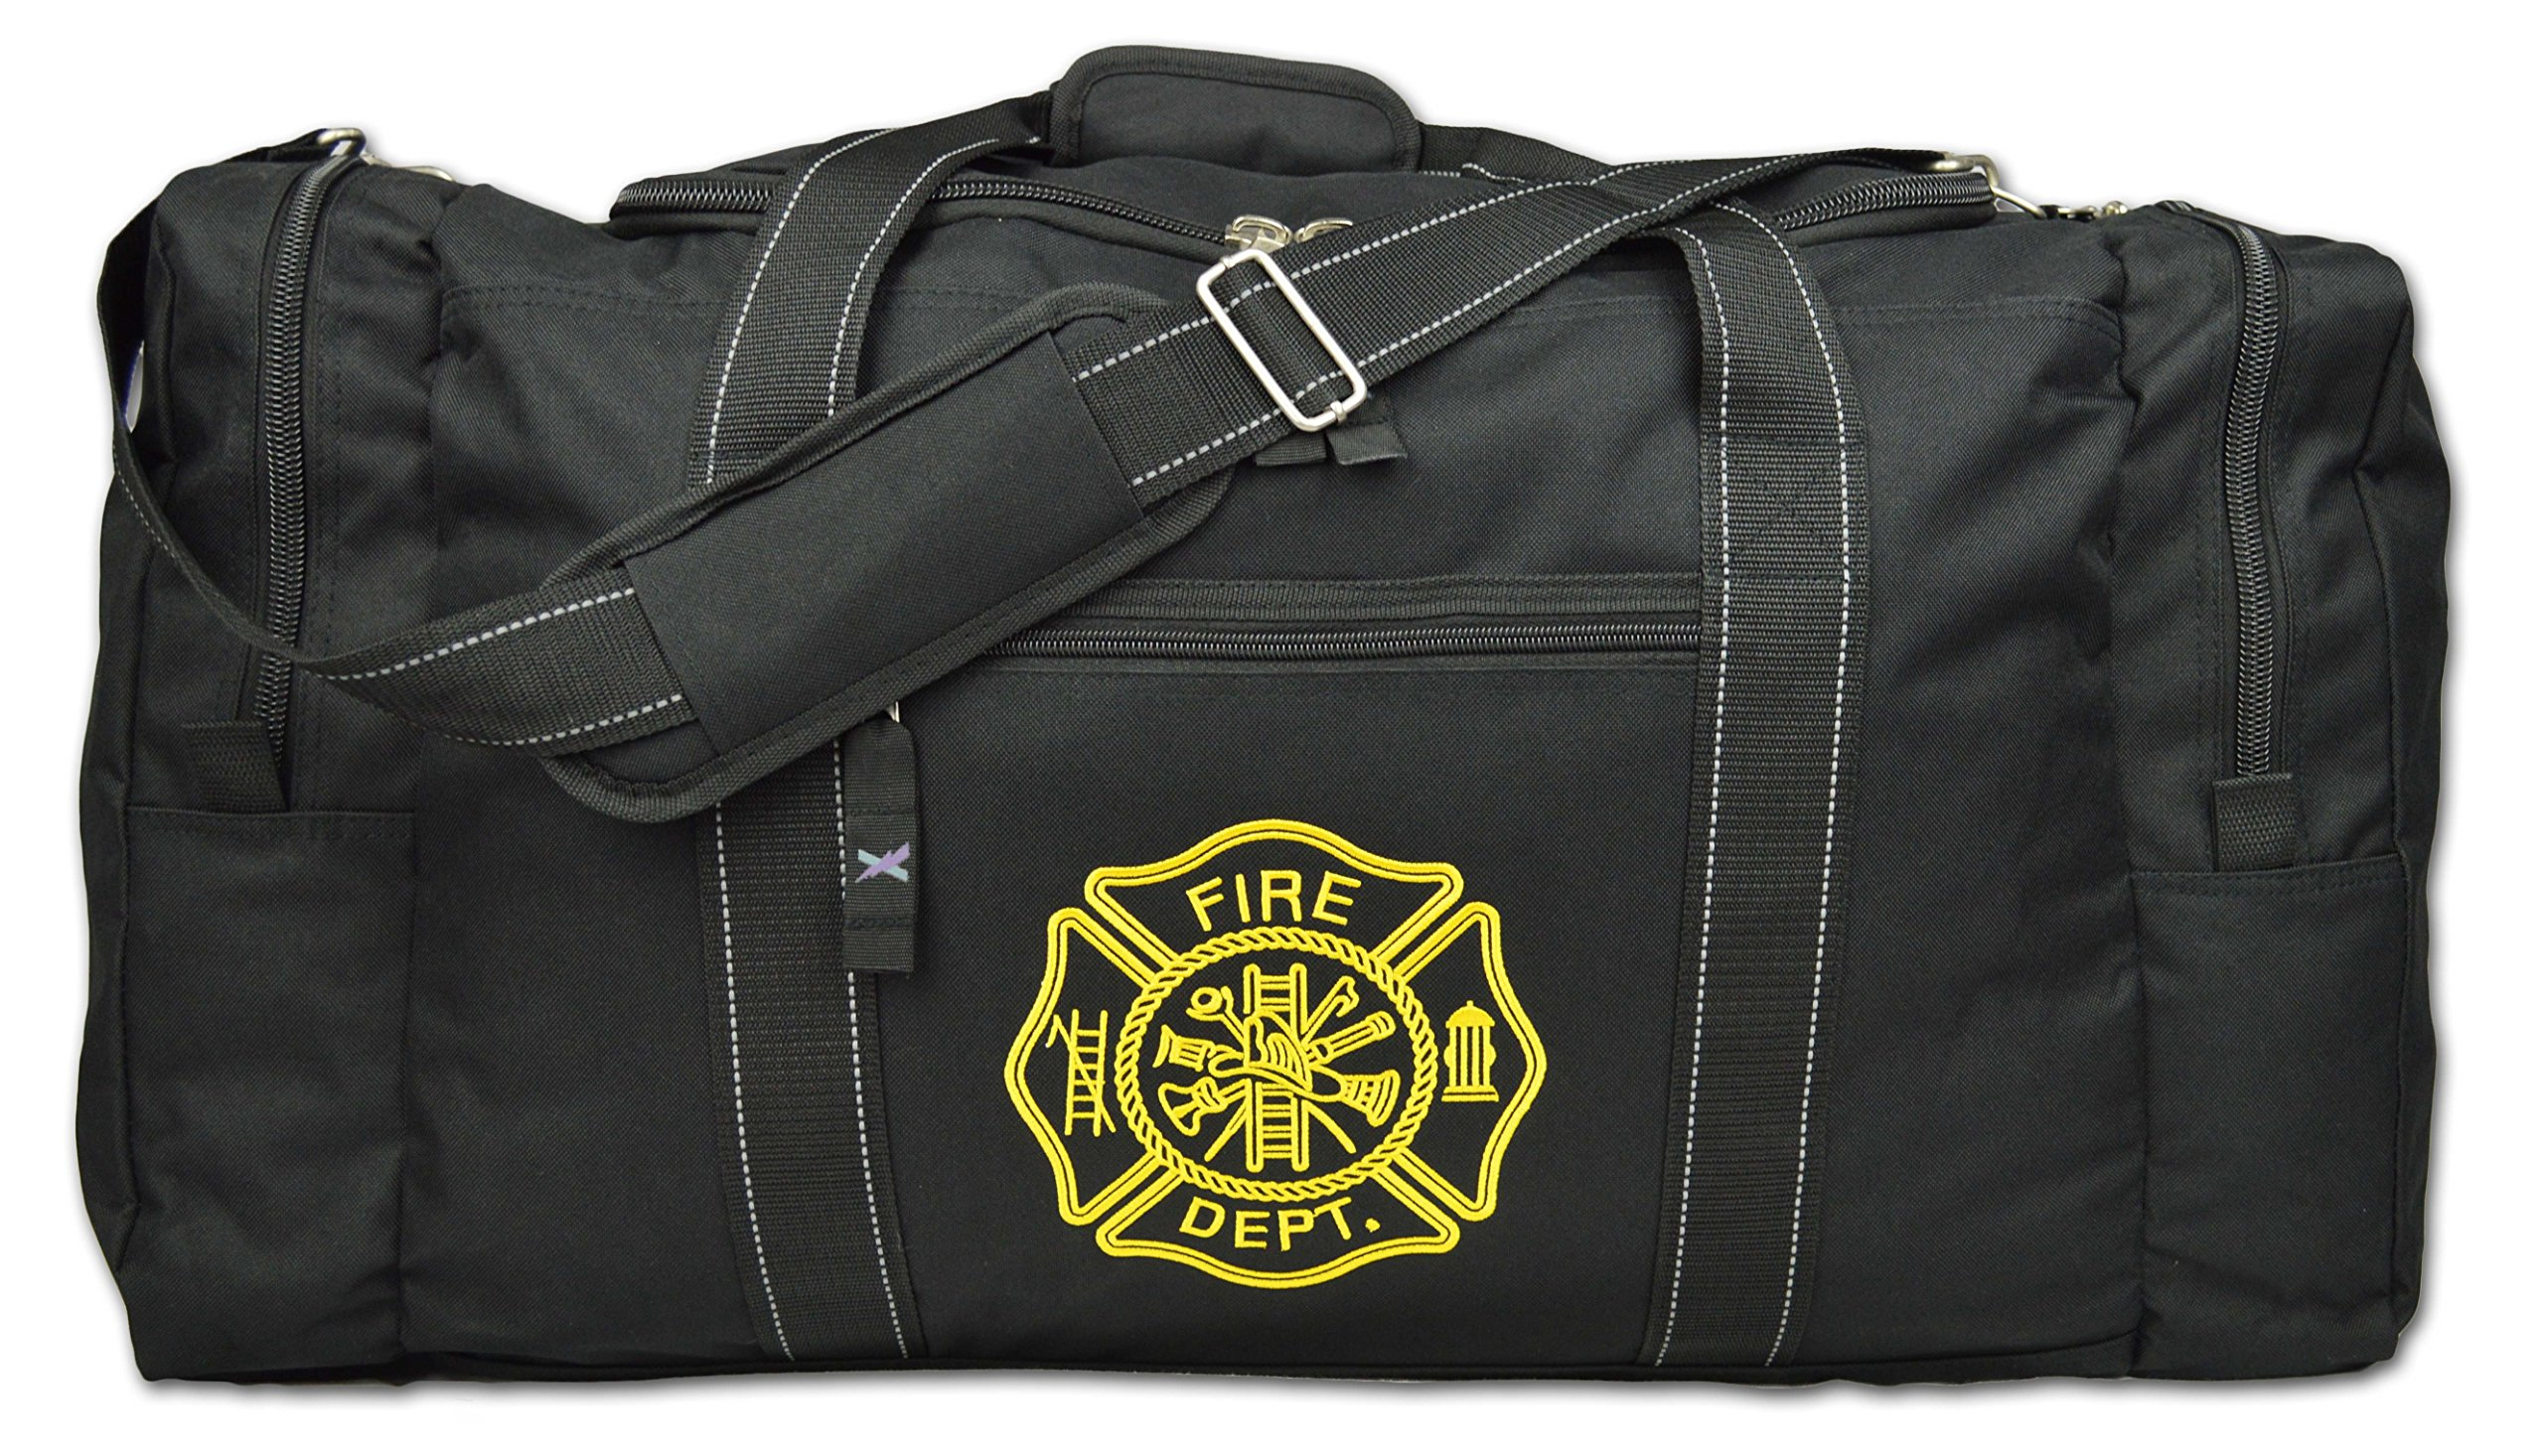 Lightning X Value Firefighter Turnout Gear Bag w/Maltese Cross - Black by Lightning X Products